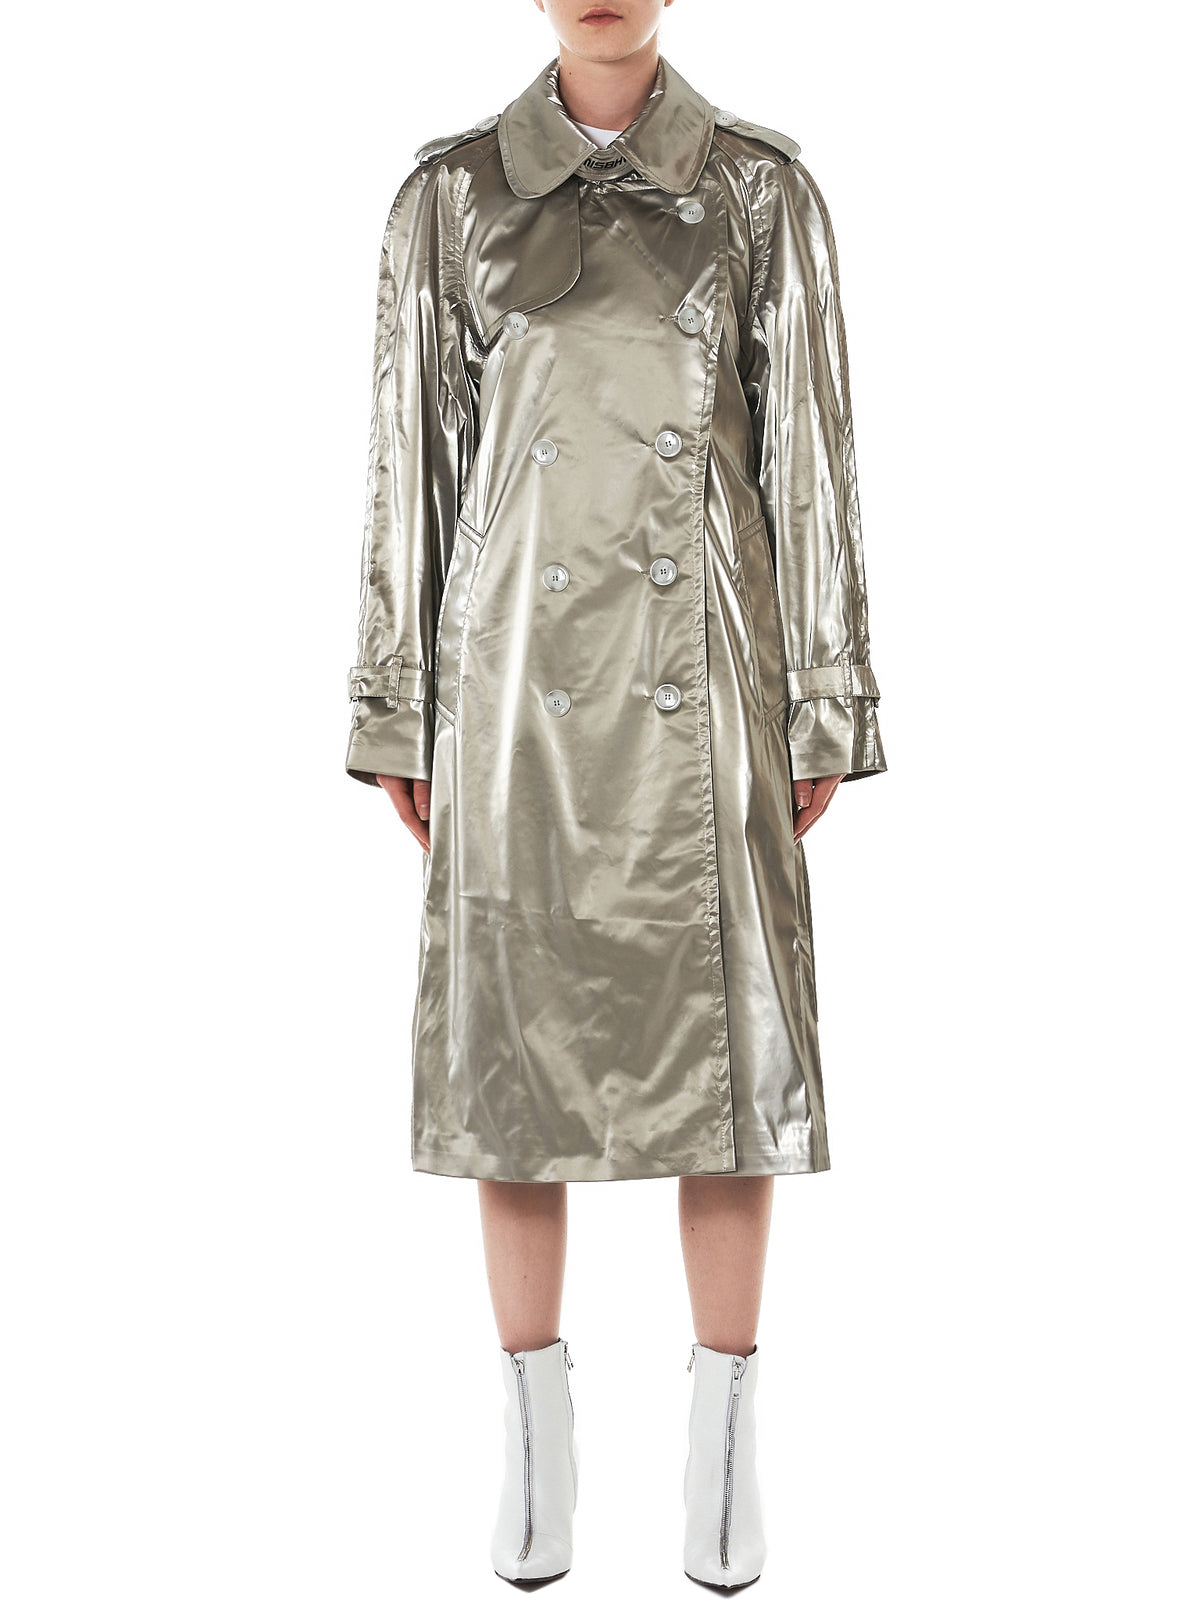 'Fantasy' Tech Trench Coat (306-SAND)